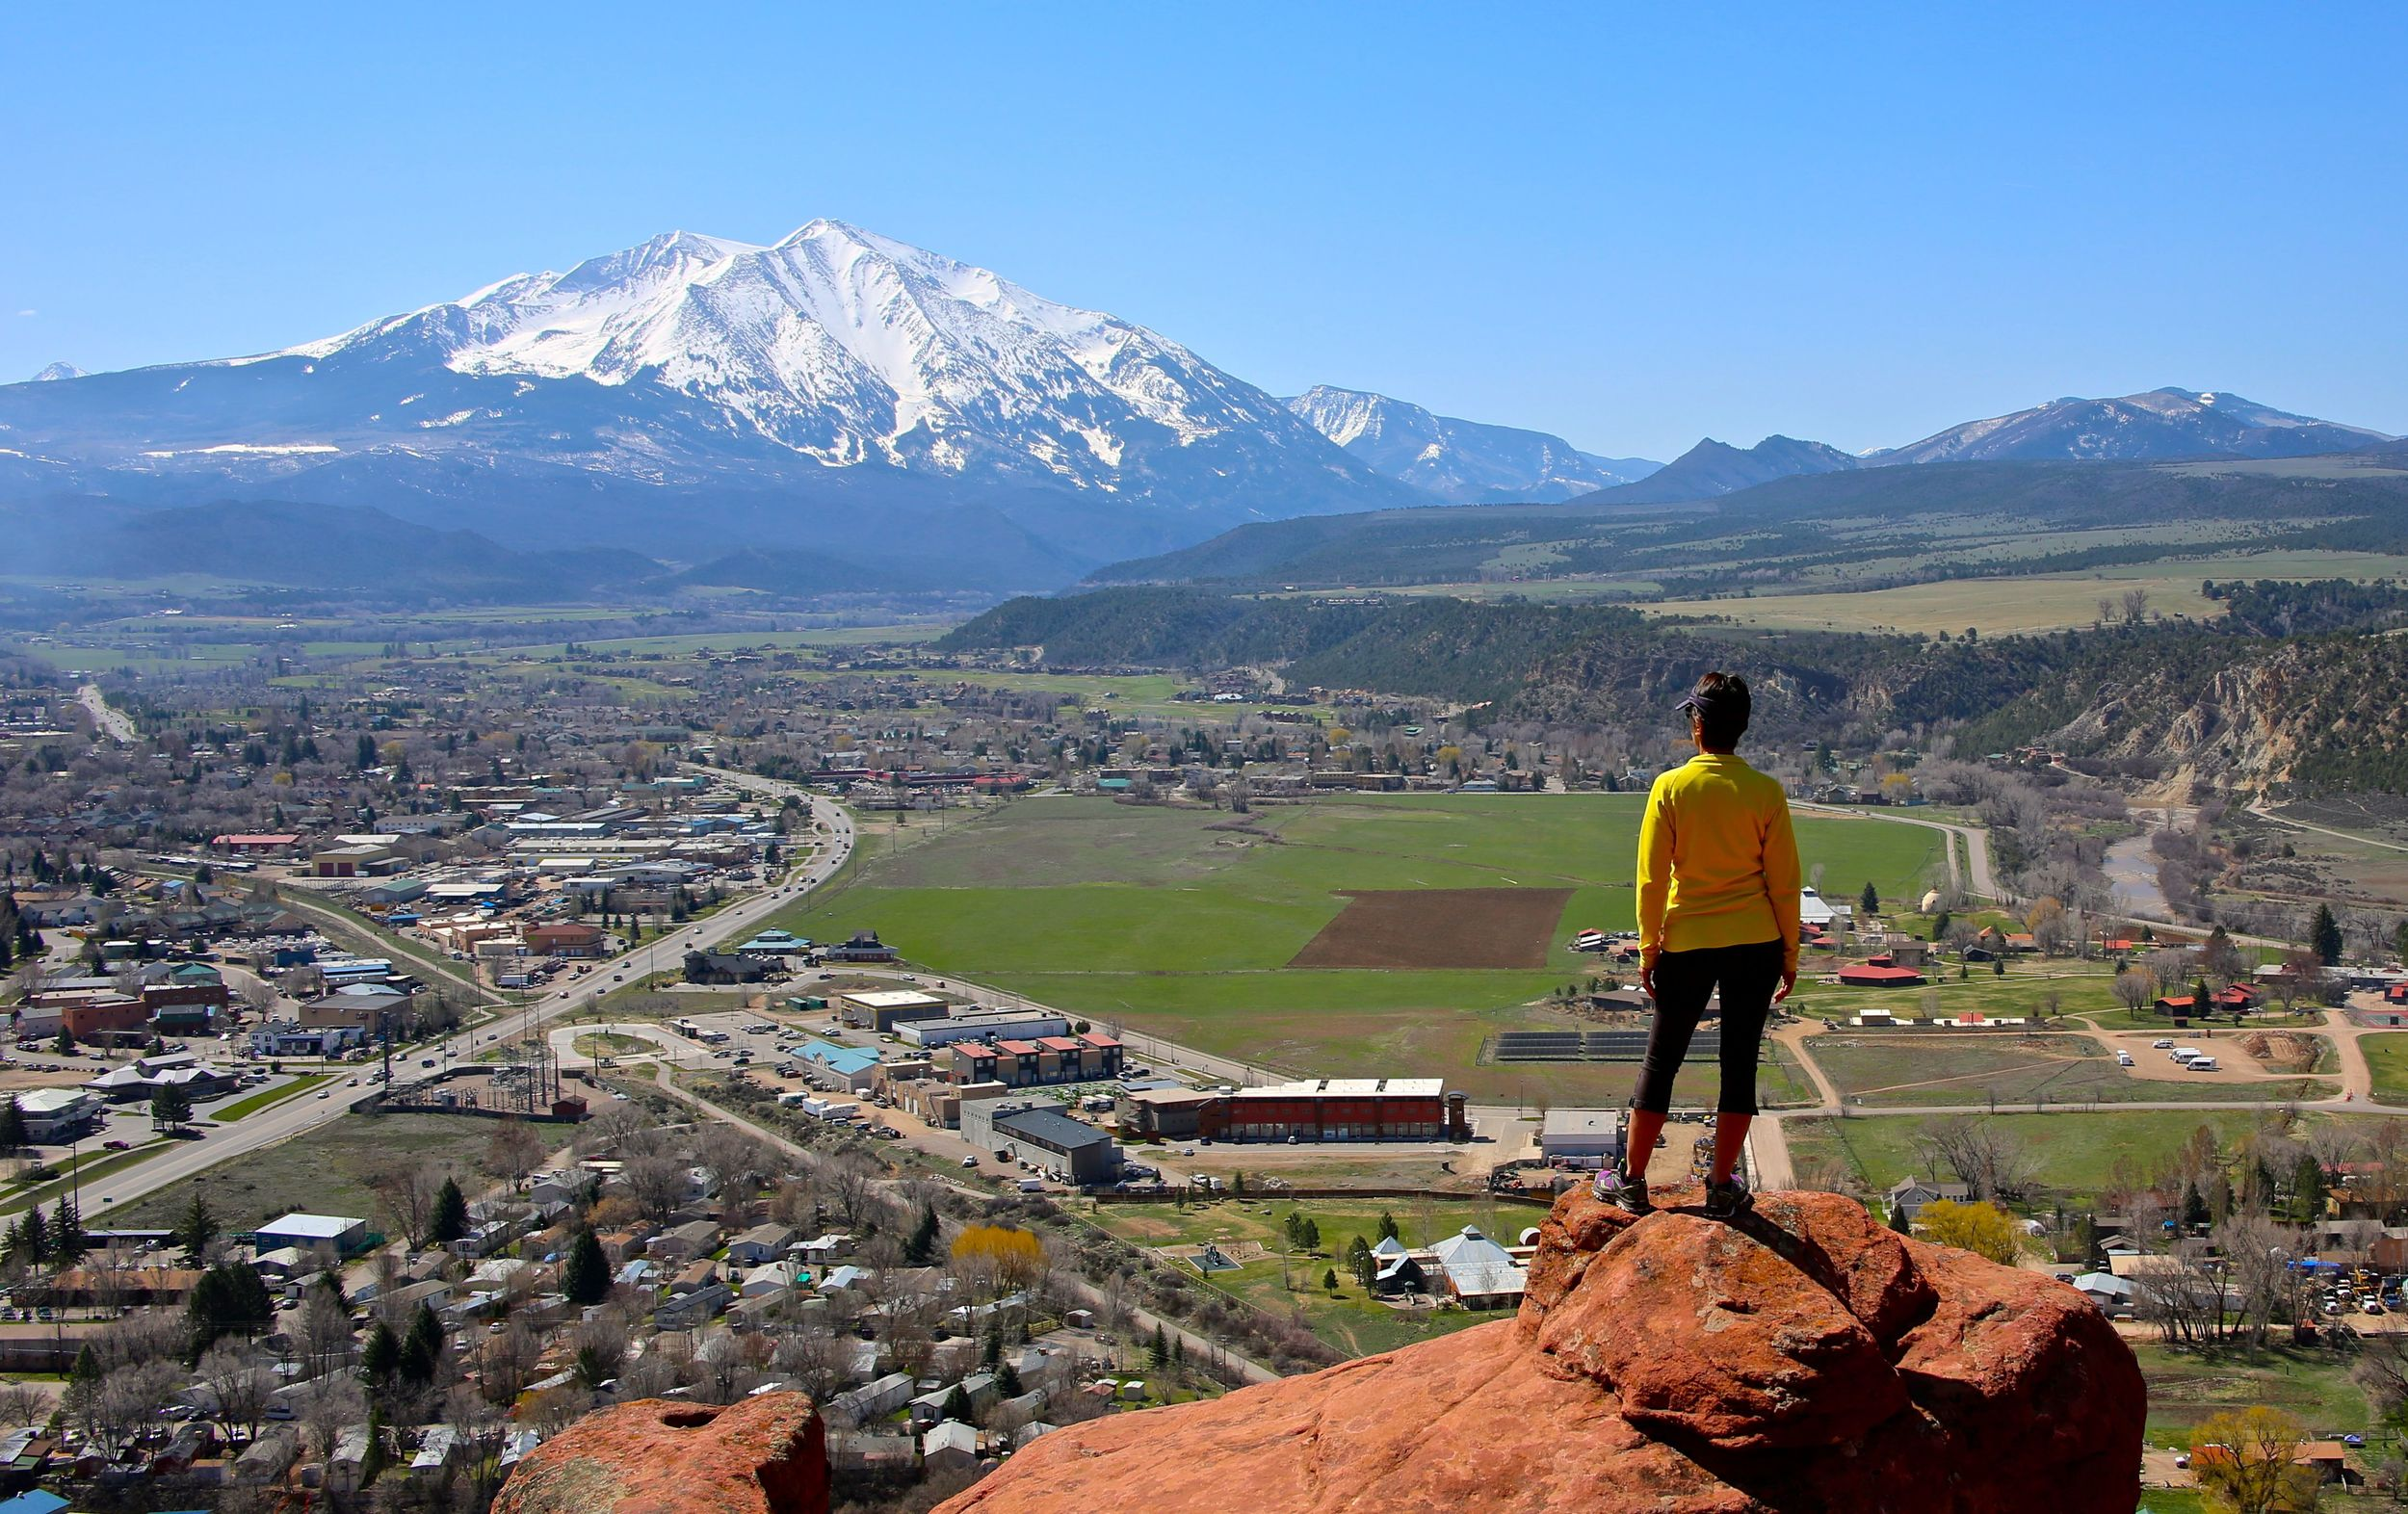 Karen on Red Hill, overlooking Carbondale and across to Mount Sopris.